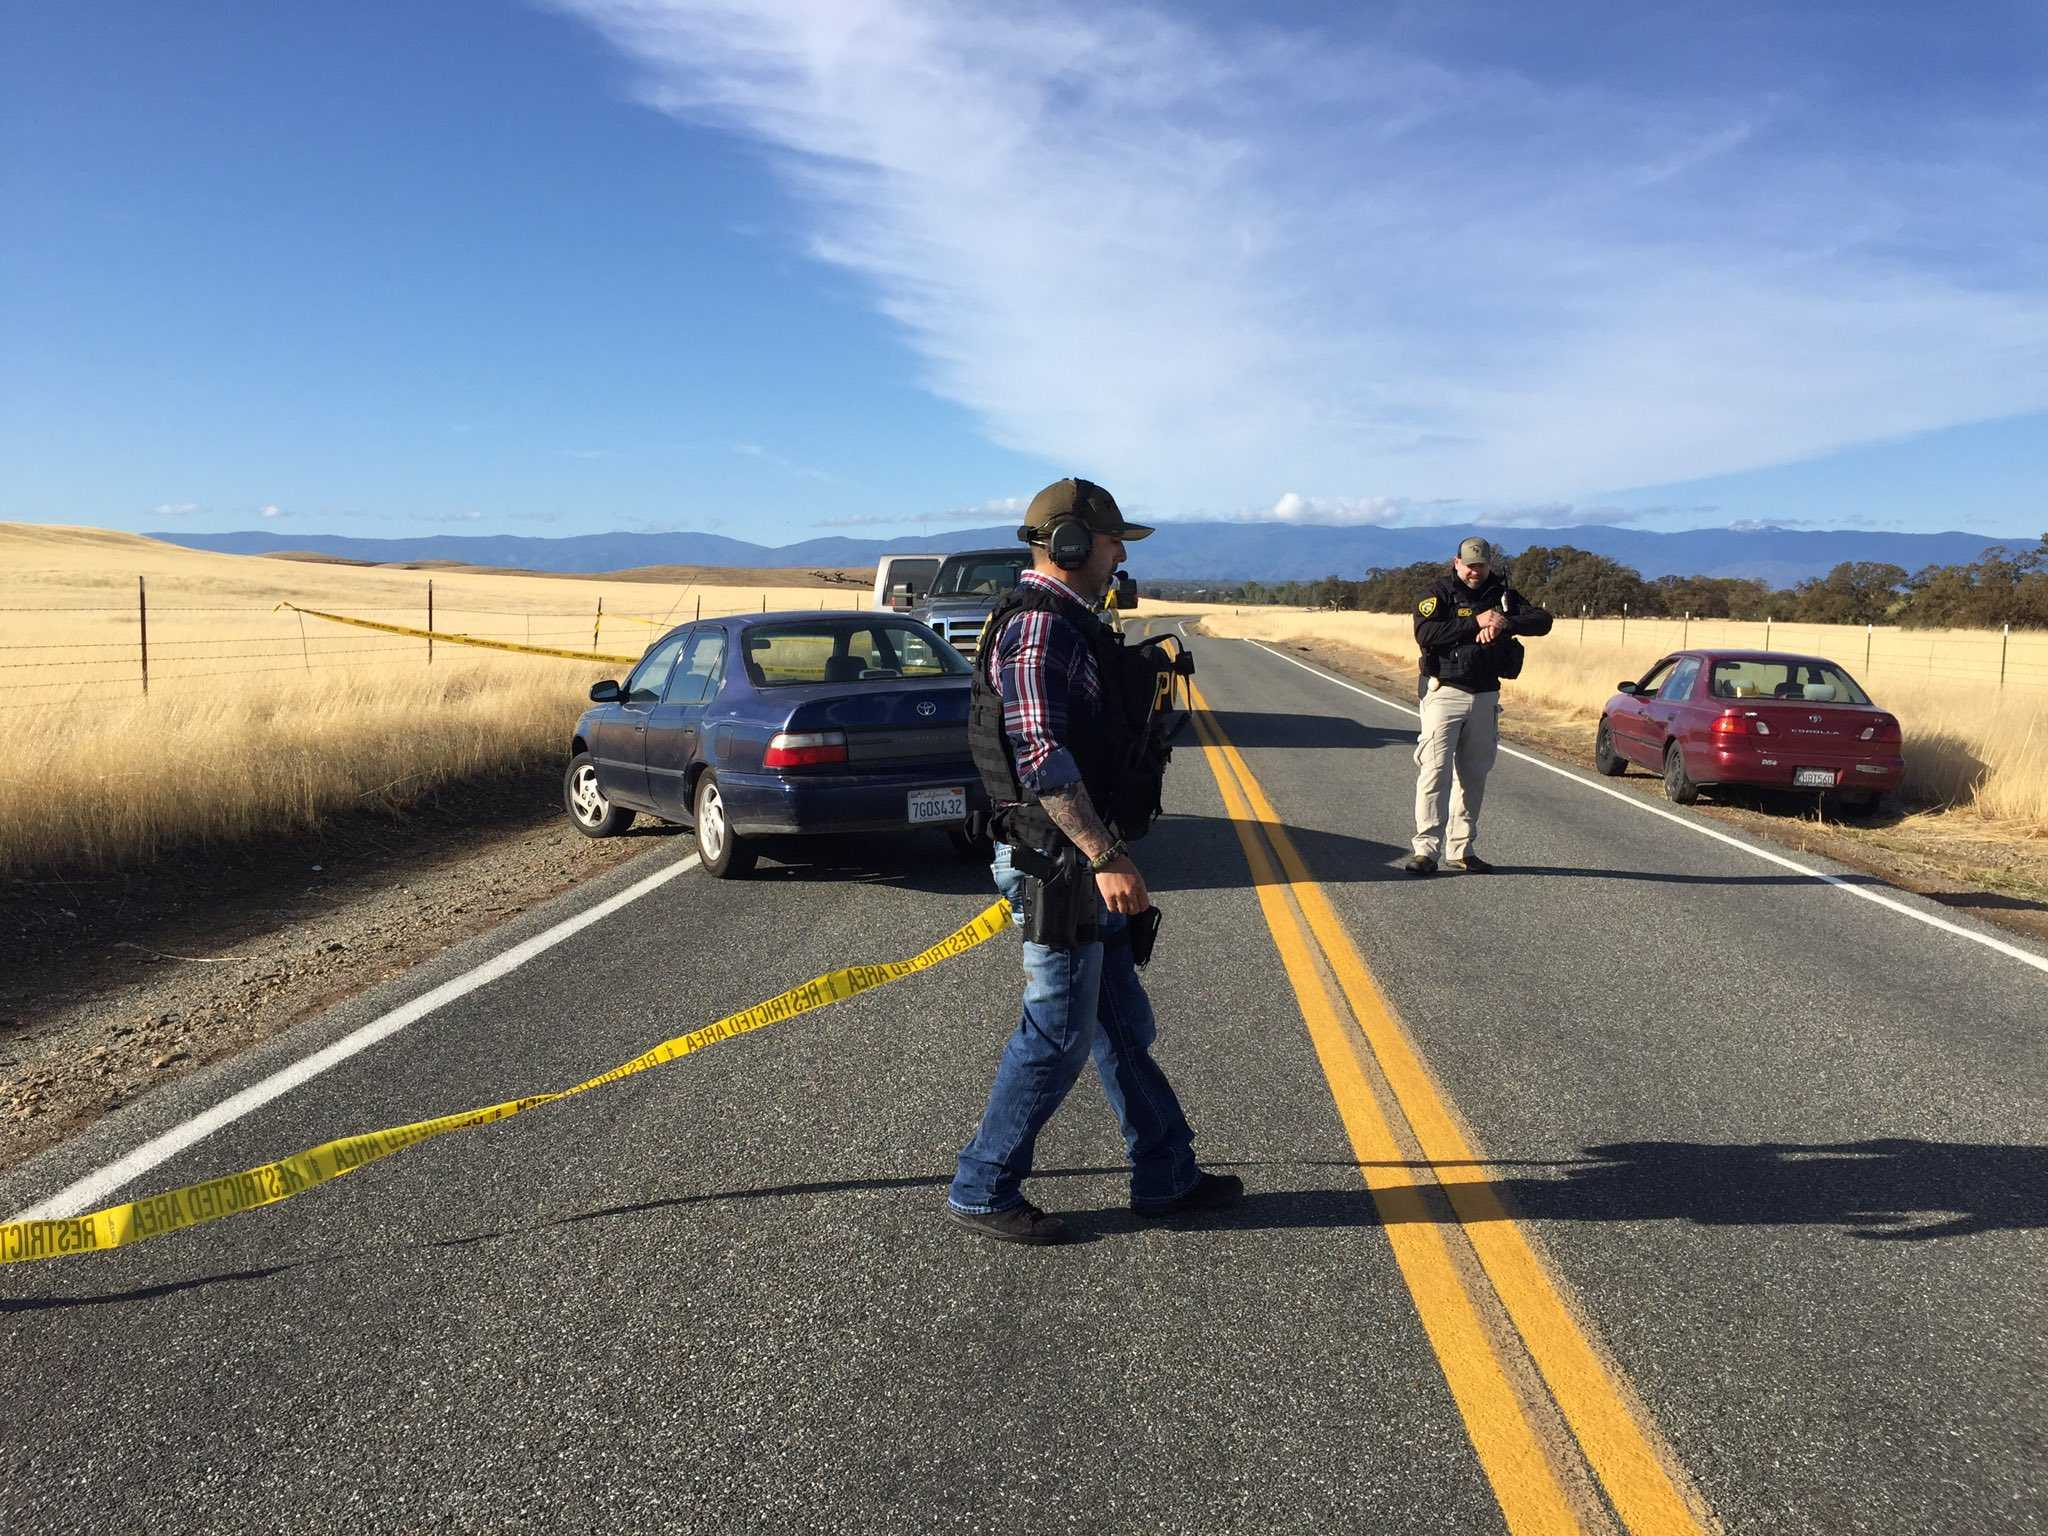 Multiple People Confirmed Dead after Shooting Near Elementary School in Tehama County